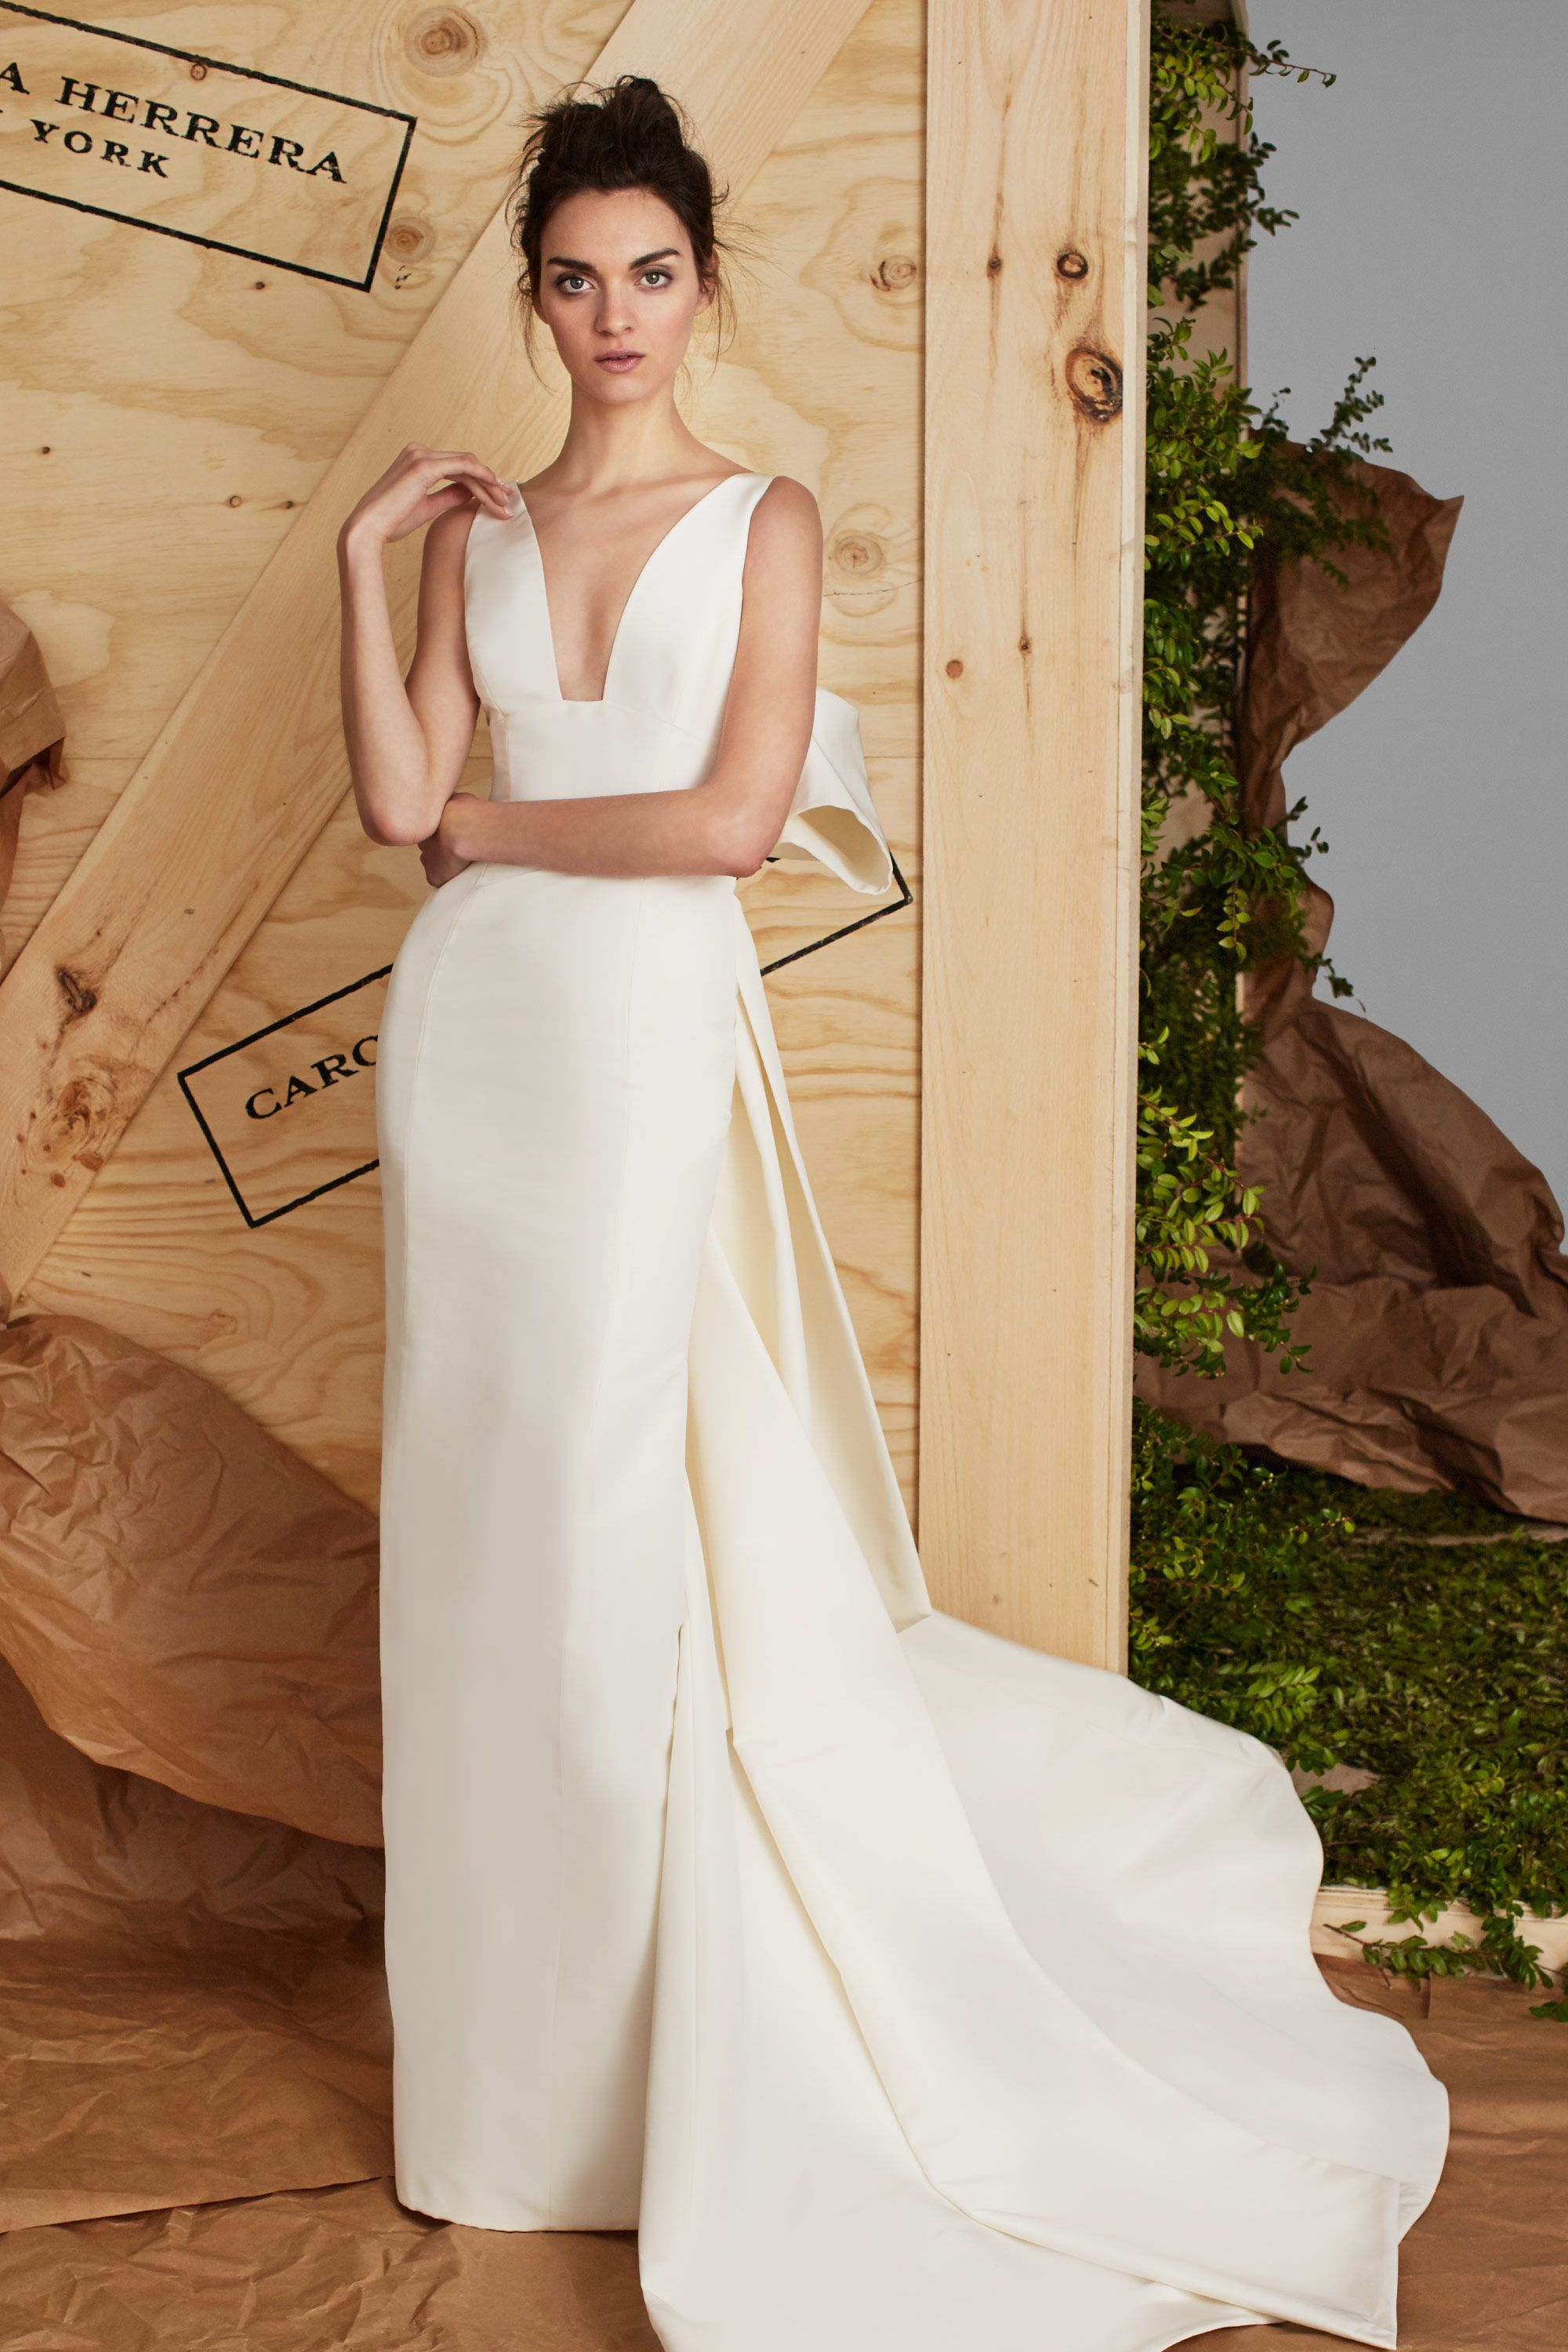 Elite wedding dresses  Aubrey Spring  Carolina Herrera  Luelite Bridal Boston